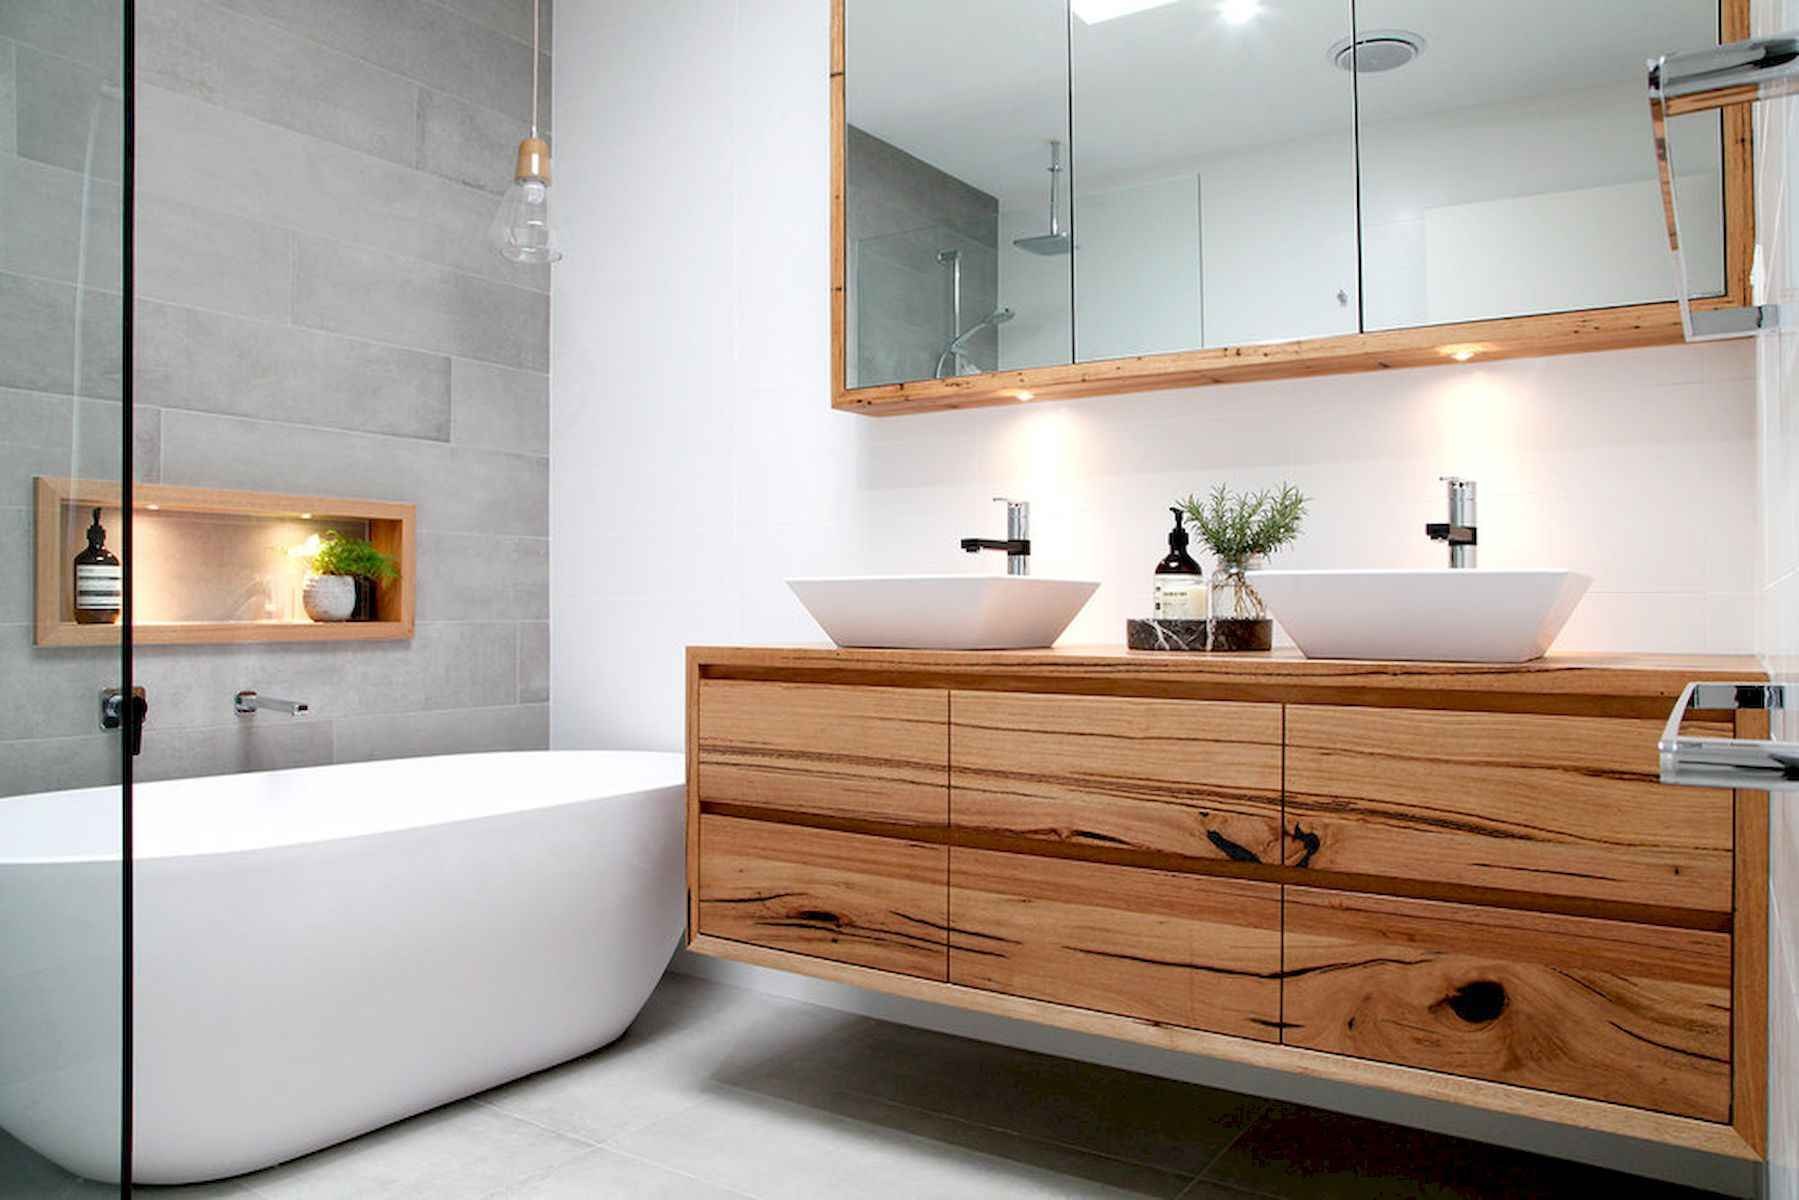 70 modern bathroom cabinets ideas decorations and remodel (56)